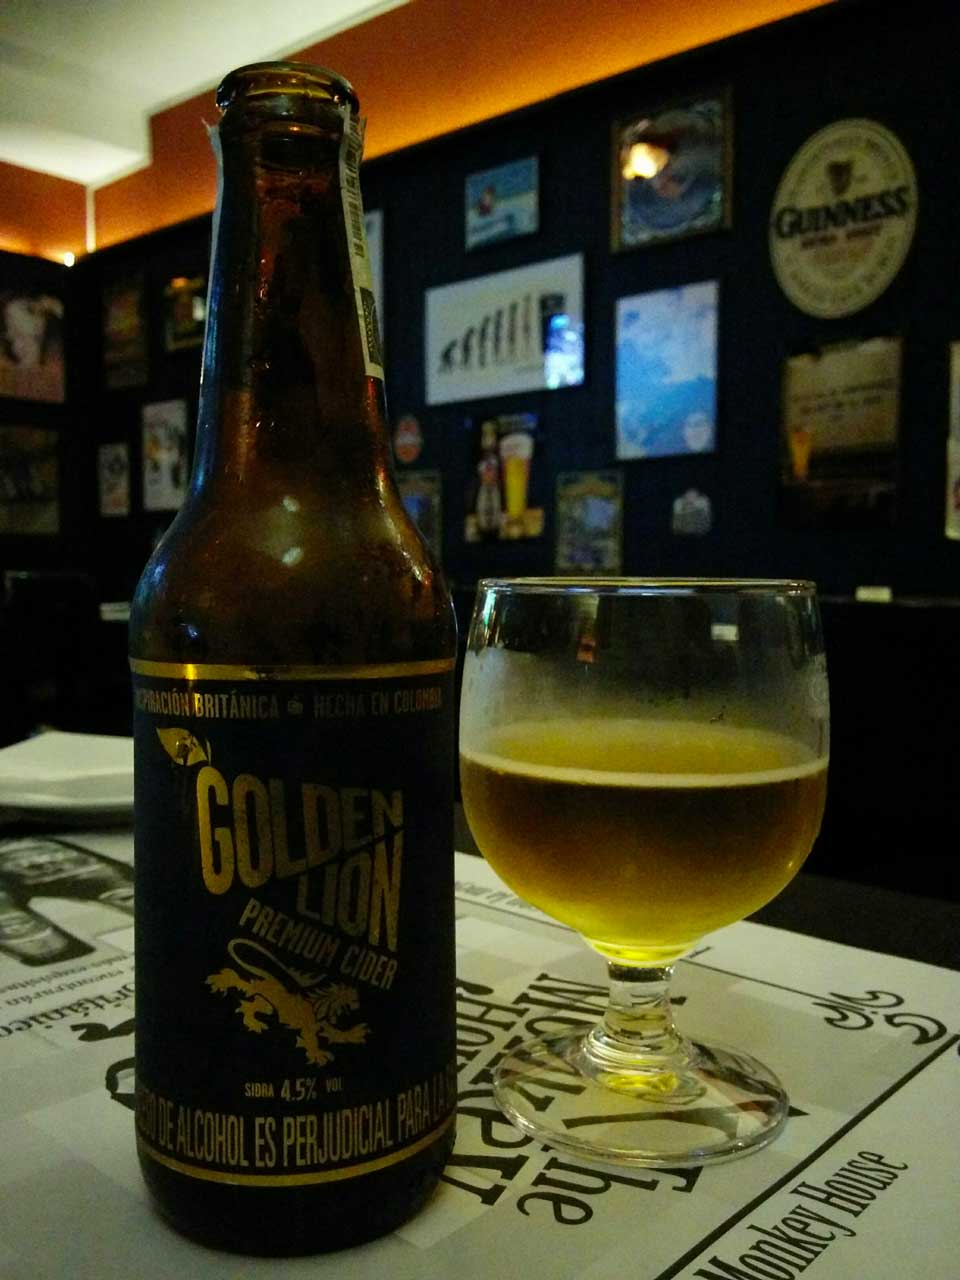 Golden Lion Cider in Colombia